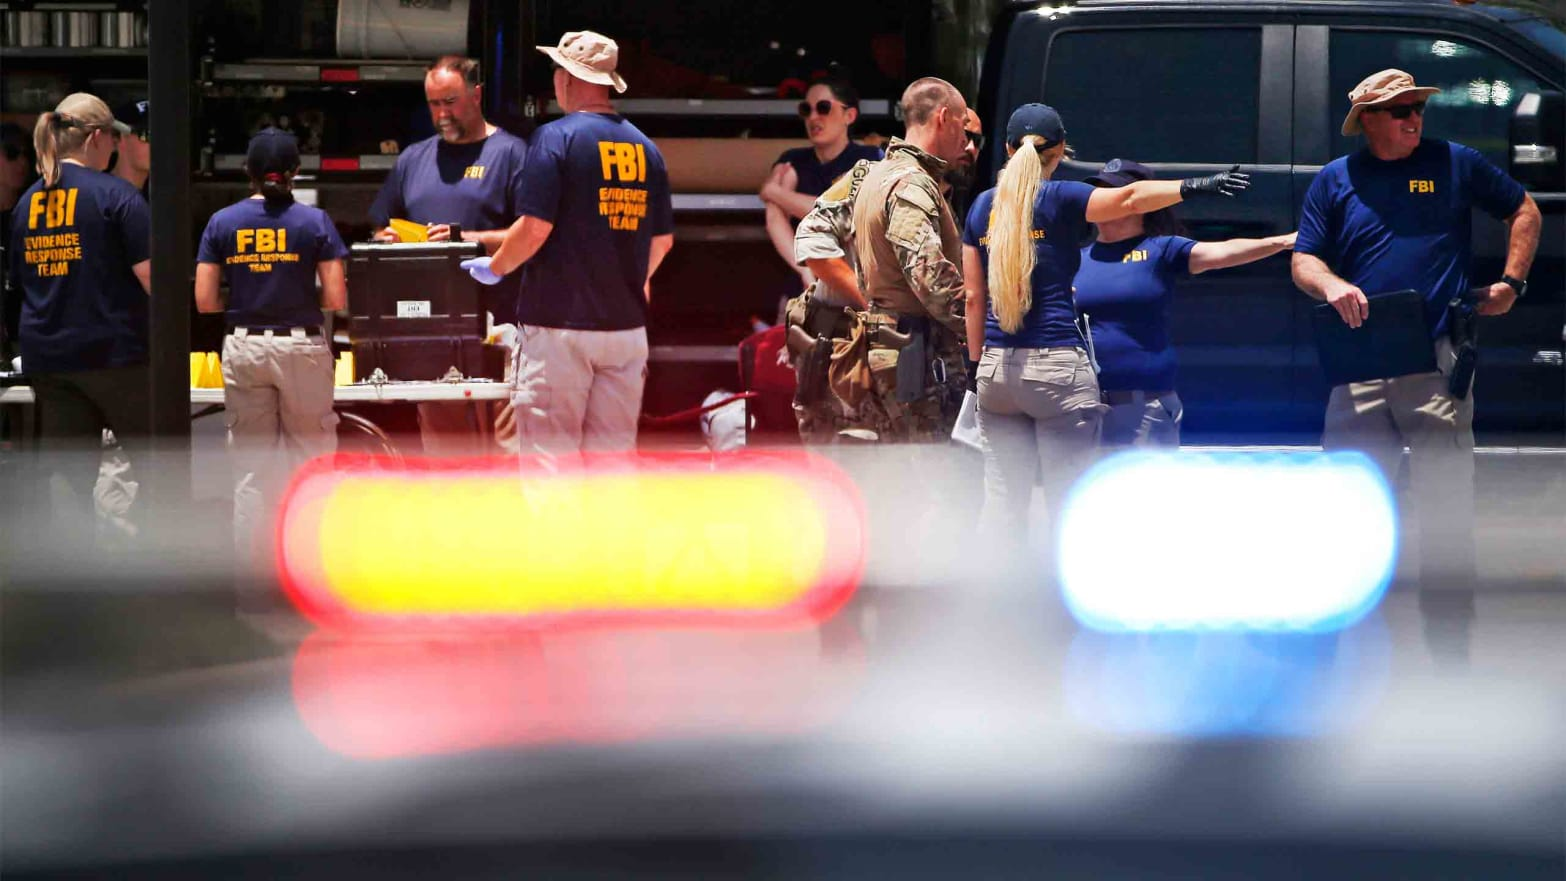 Dallas Federal Building Shooter Latest 'Hero' in Endless American Carnage Series Brought to You by the NRA